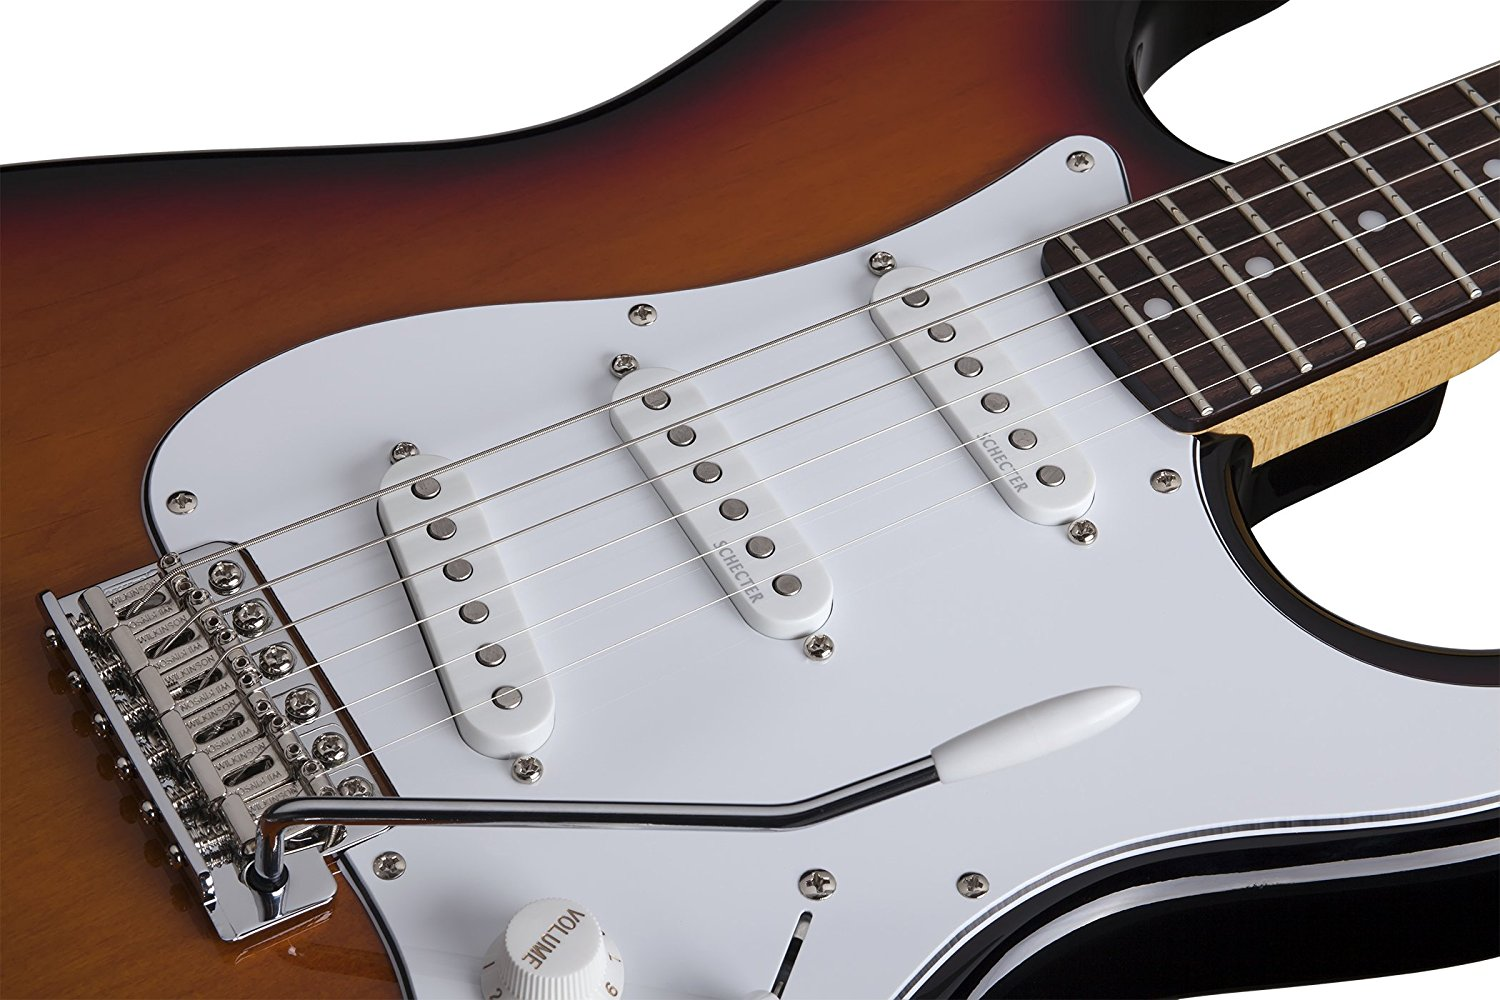 Delighted Bass Pickup Configurations Tall 5 Way Import Switch Wiring Clean Installing A Remote Start Bulldog Car Alarms Youthful Ibanez Hsh PinkOne Humbucker One Volume 5 Best Affordable Stratocaster Alternatives | Spinditty